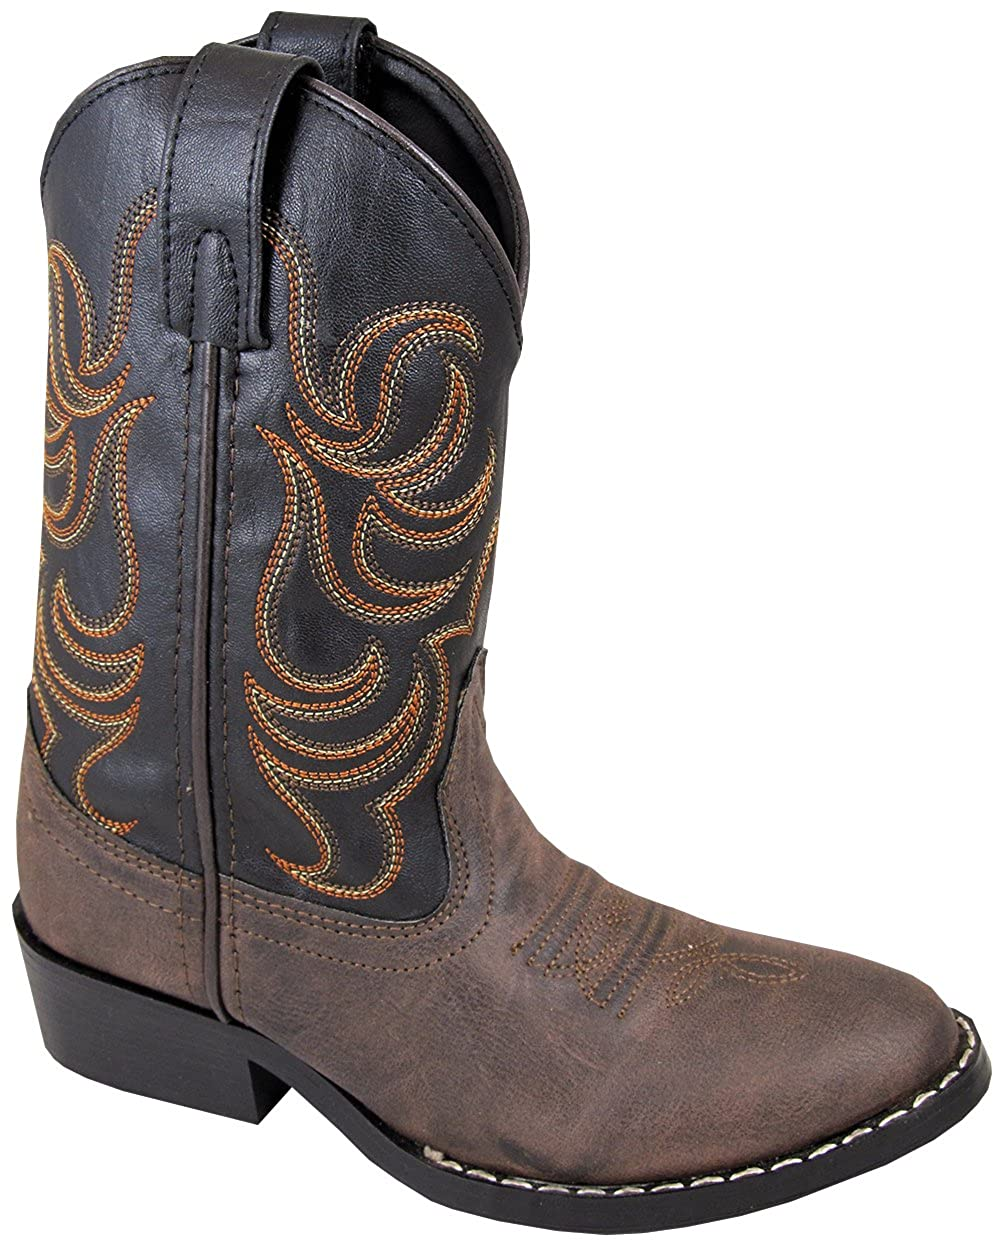 Smoky Mountain Childrens Girls Monterey Boots Brown/Pink Smoky Mountain Boots 1574C